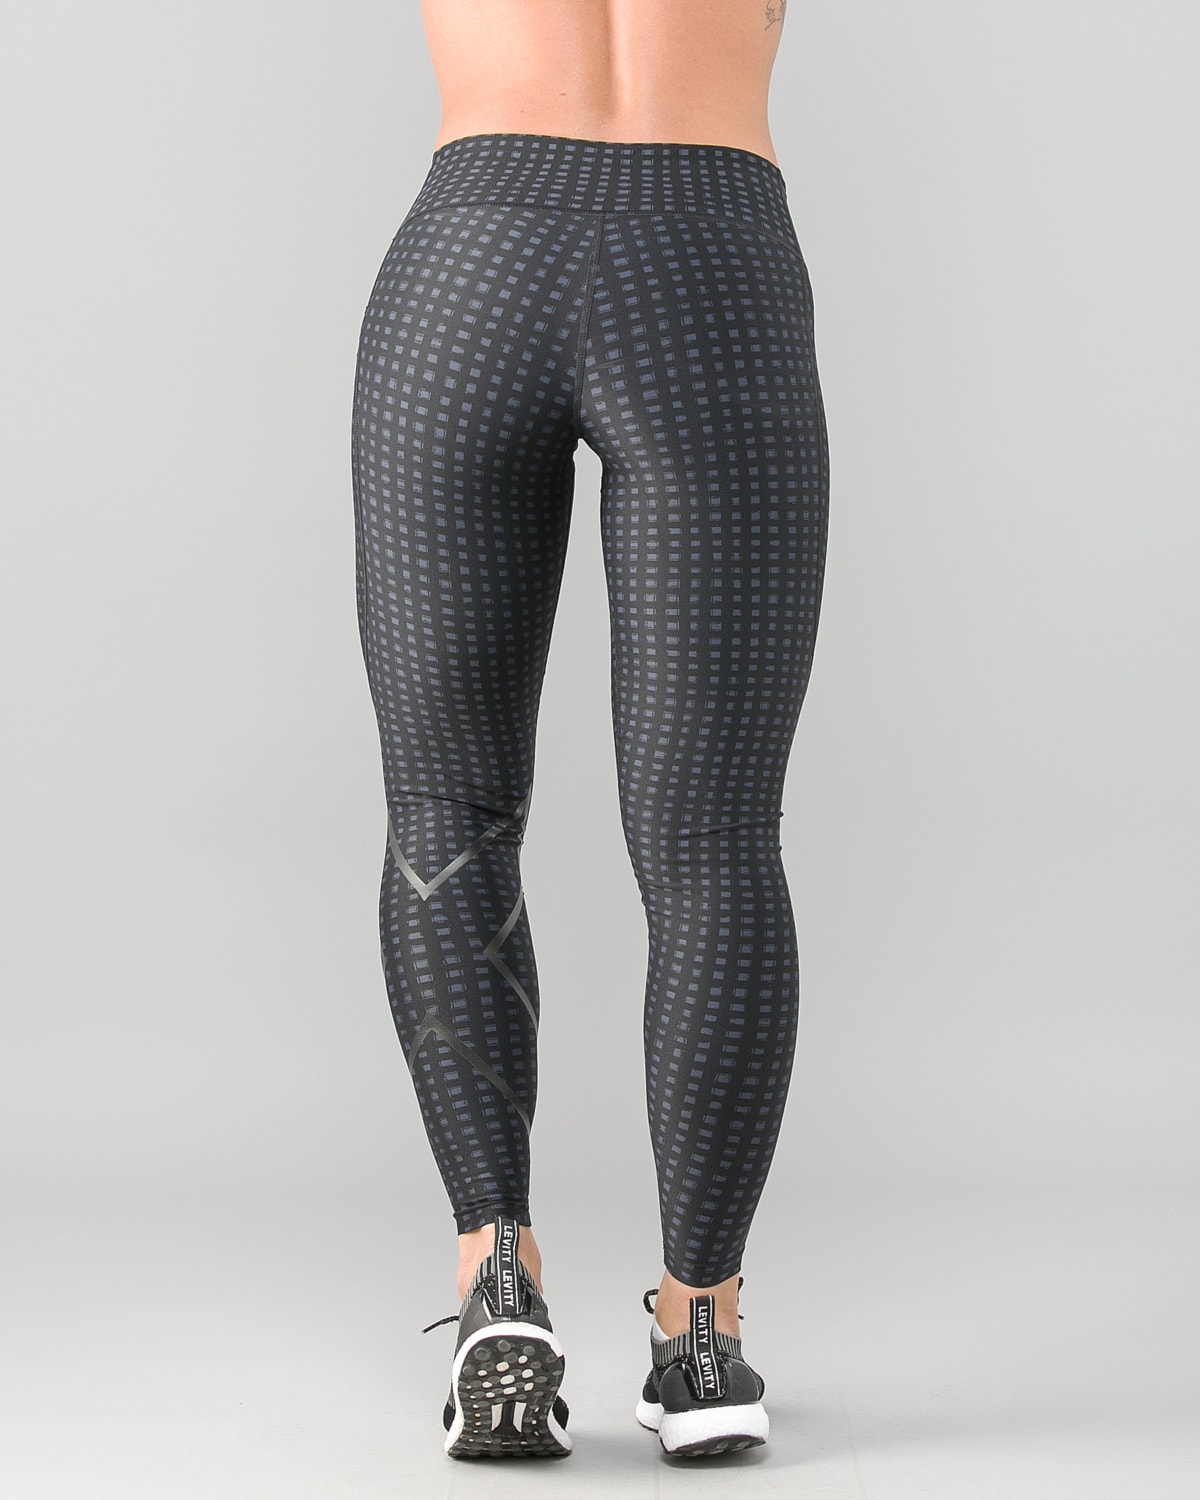 2XU-Print-Mid-Rise-Comp-Tights-W-Outer-Space-Urban-Grid-Nero6